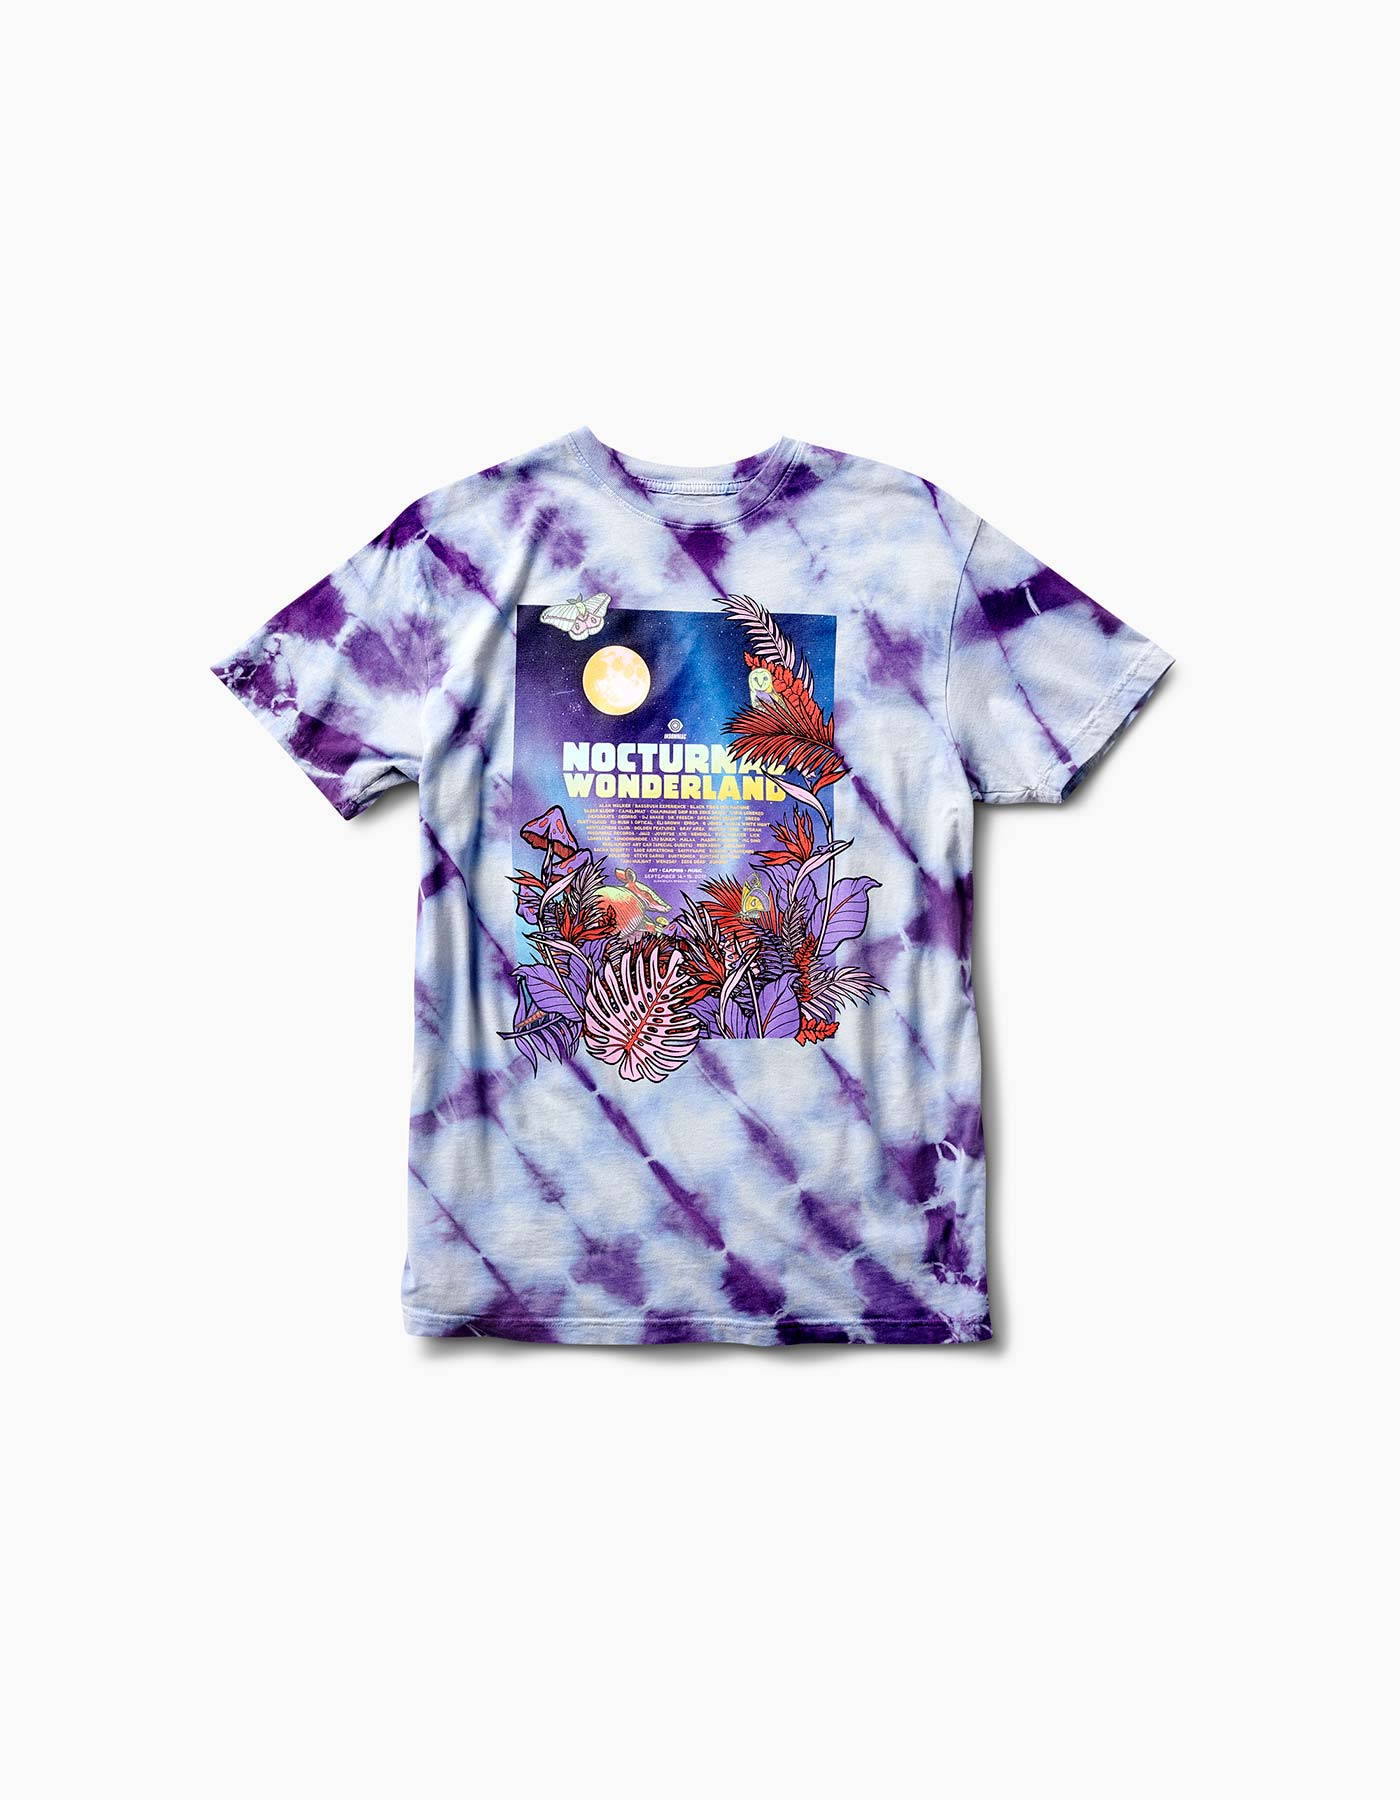 Nocturnal 2019 Wonderland Line Up Tee